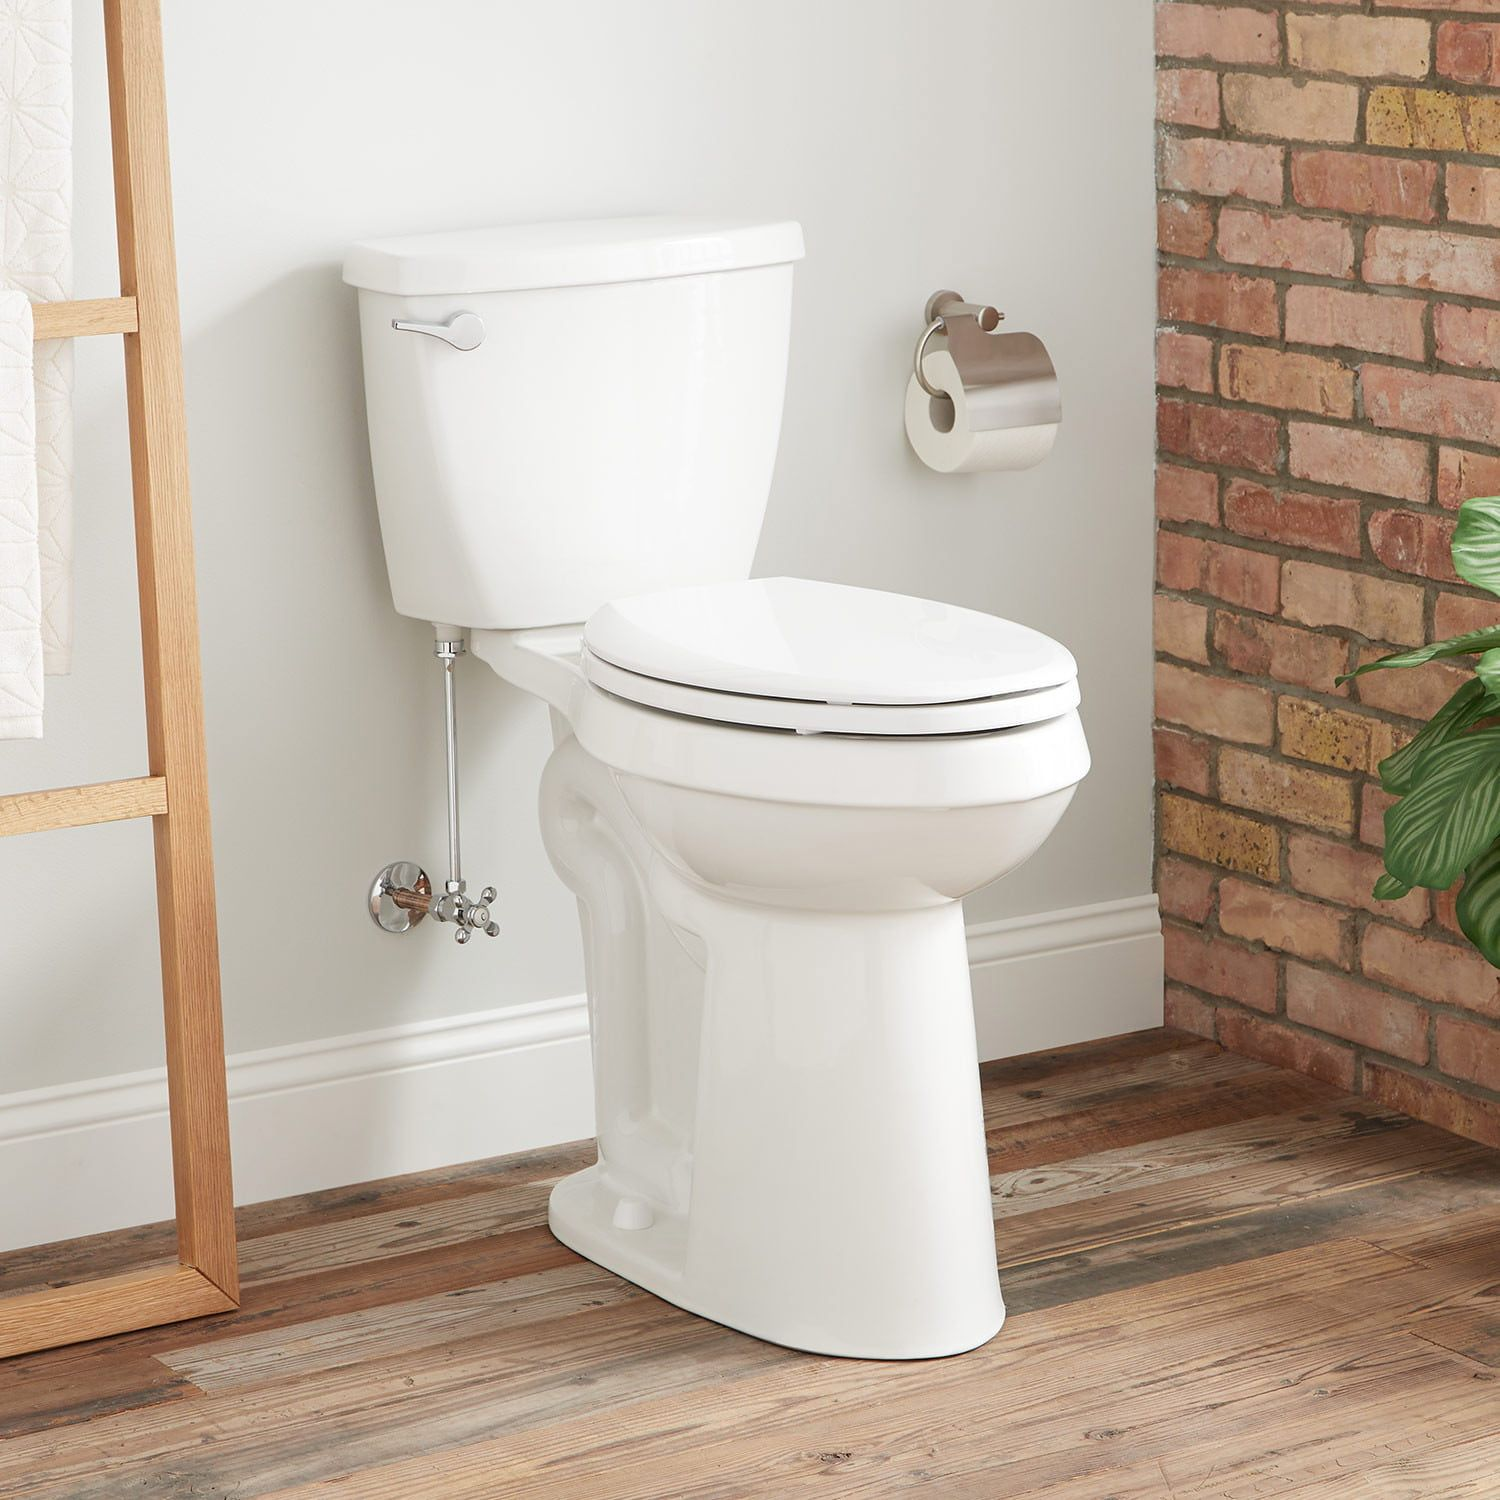 Miraculous Higher Toilet Seats Are Easier To Use For A Person With Gmtry Best Dining Table And Chair Ideas Images Gmtryco